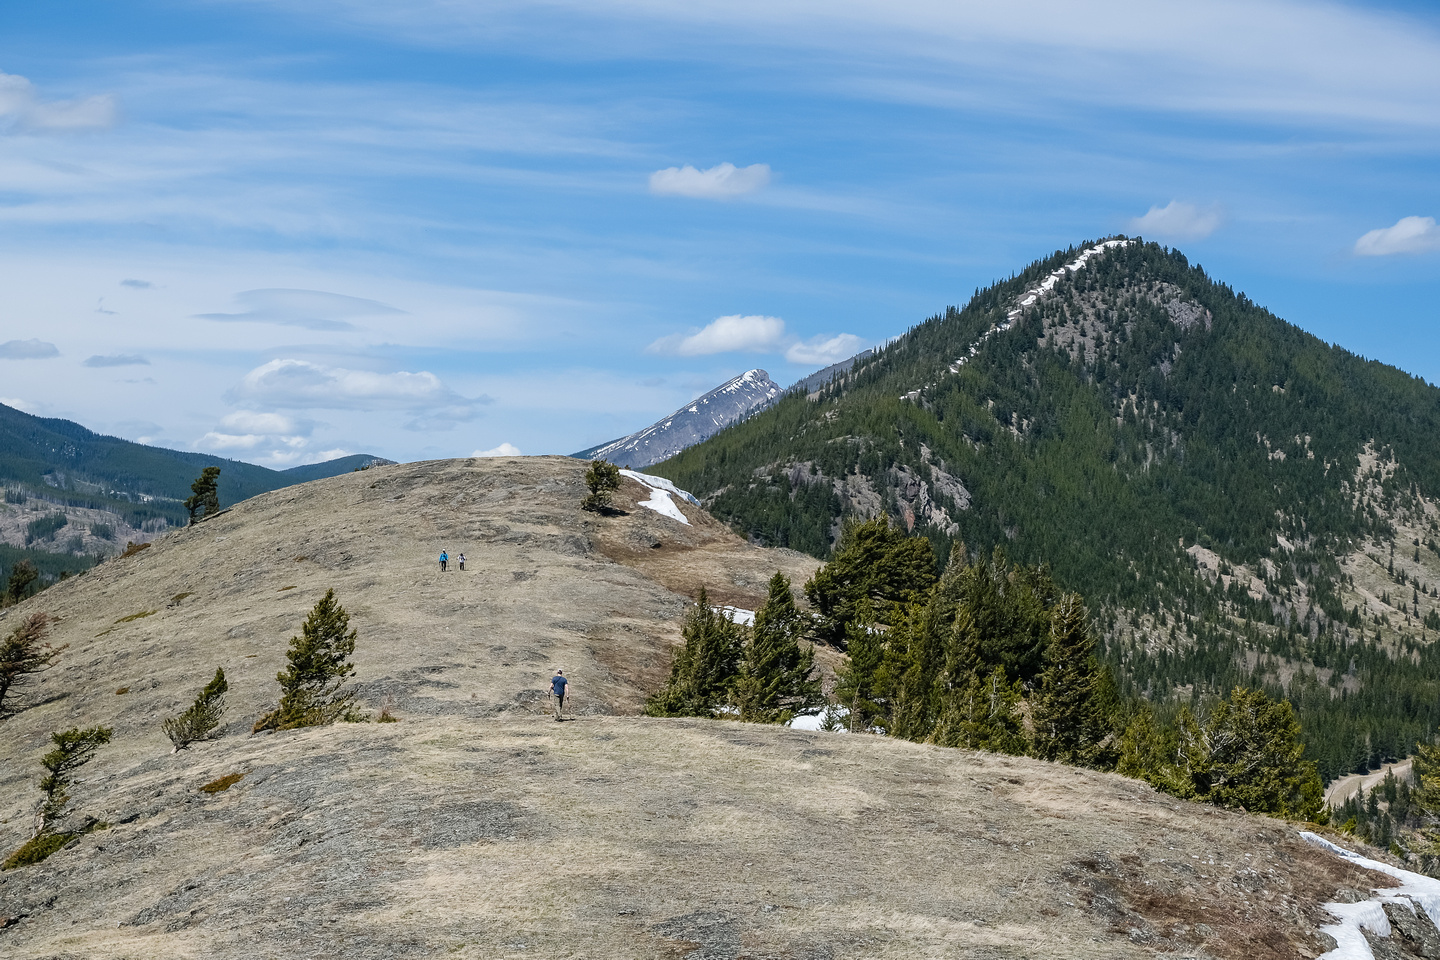 Wietse hikes towards the summit with Wedge Mountain rising at right.